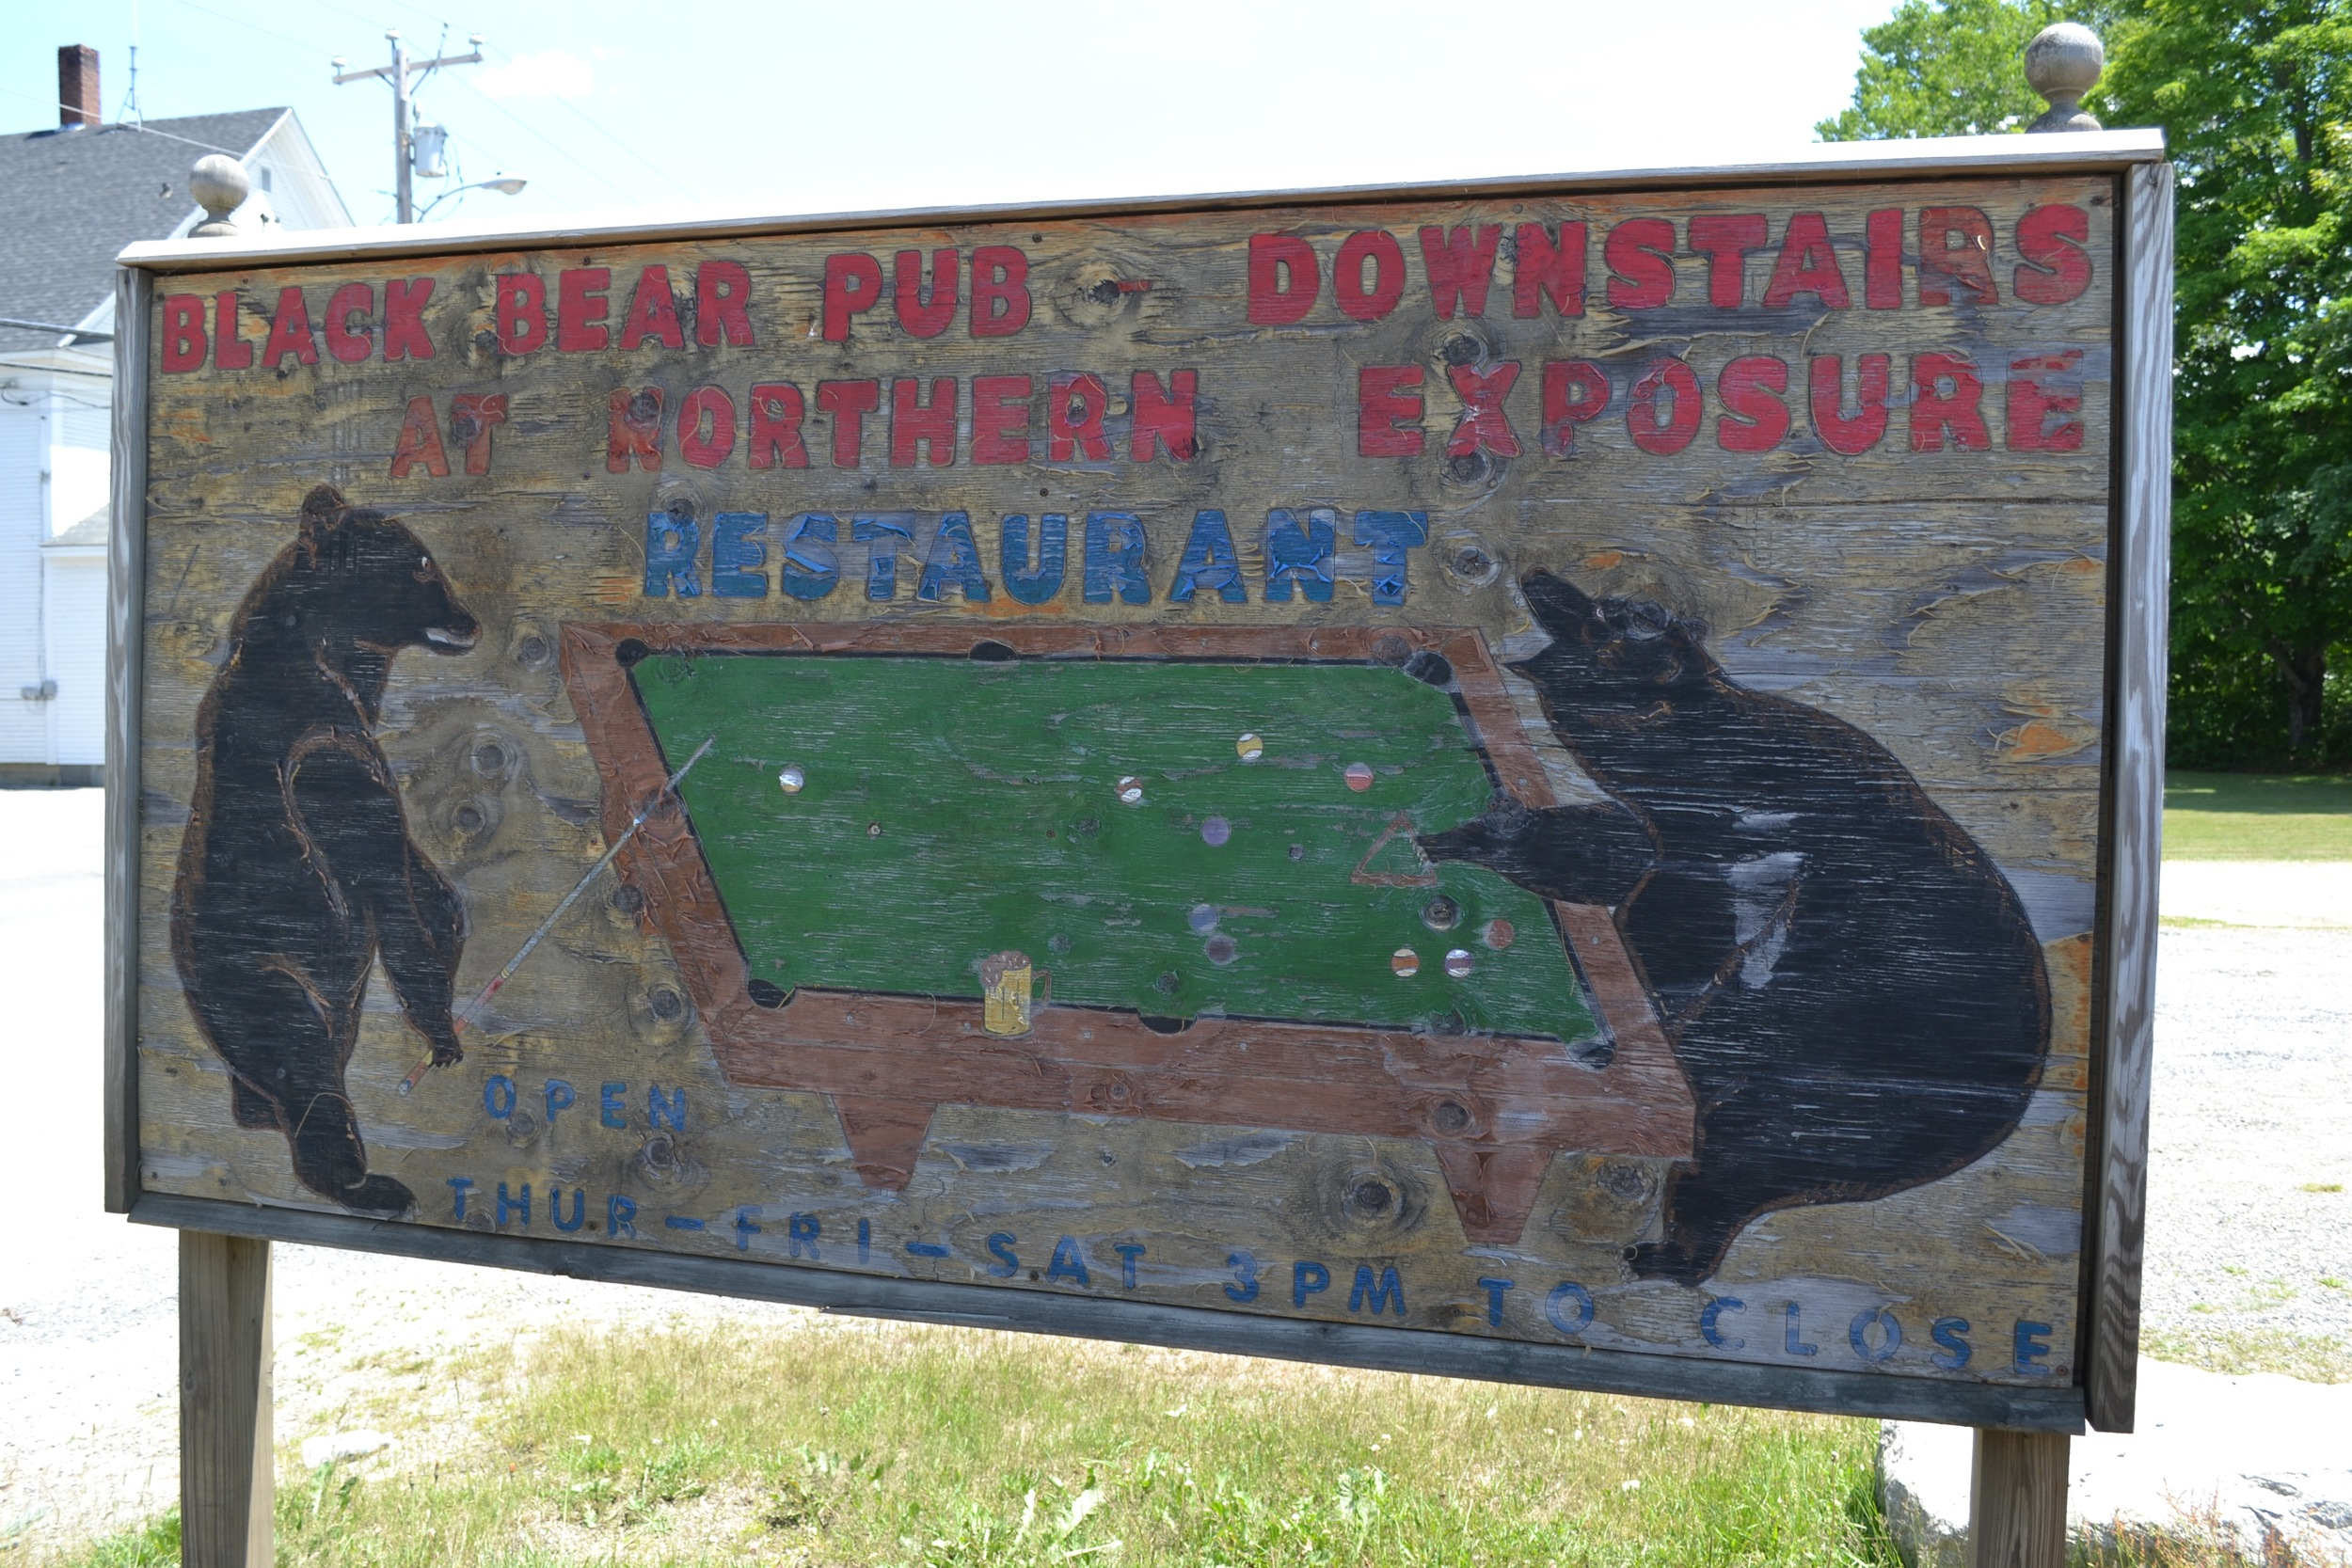 The cool old sign for Northern Exposure restaurant and Black Bear Pub in Errol, NH.